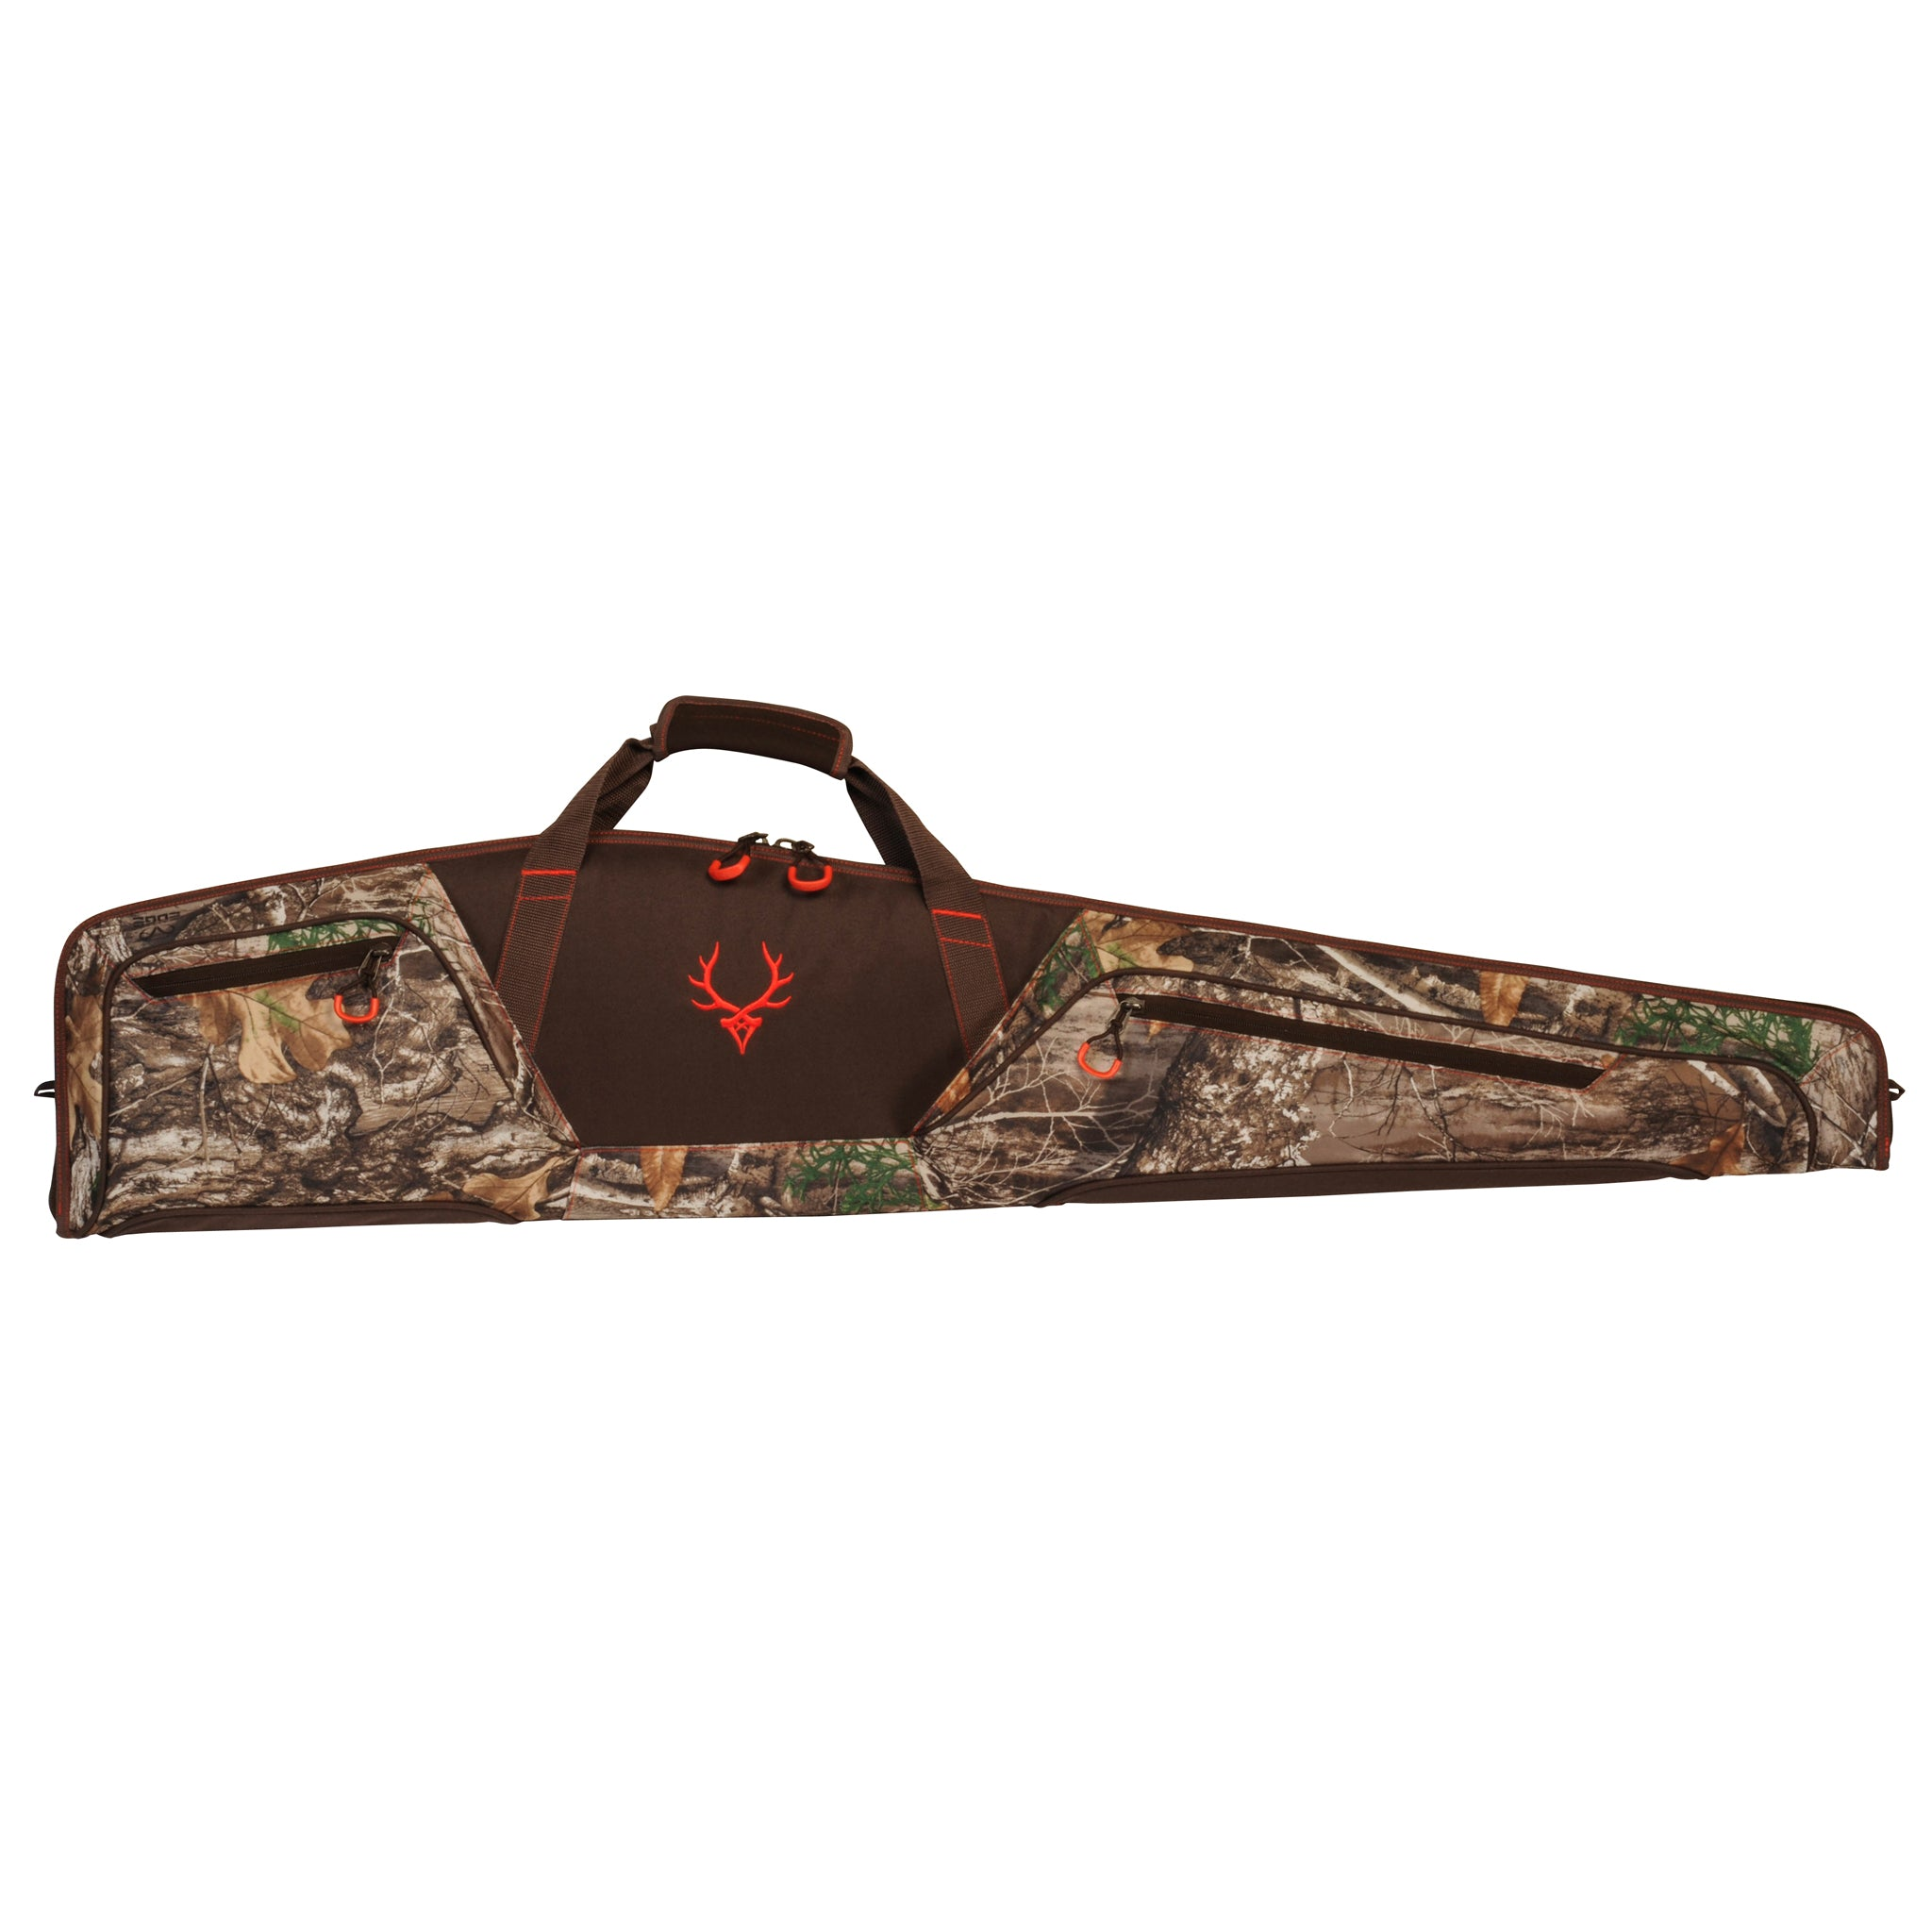 Hill Country Series Realtree Edge Rifle Case